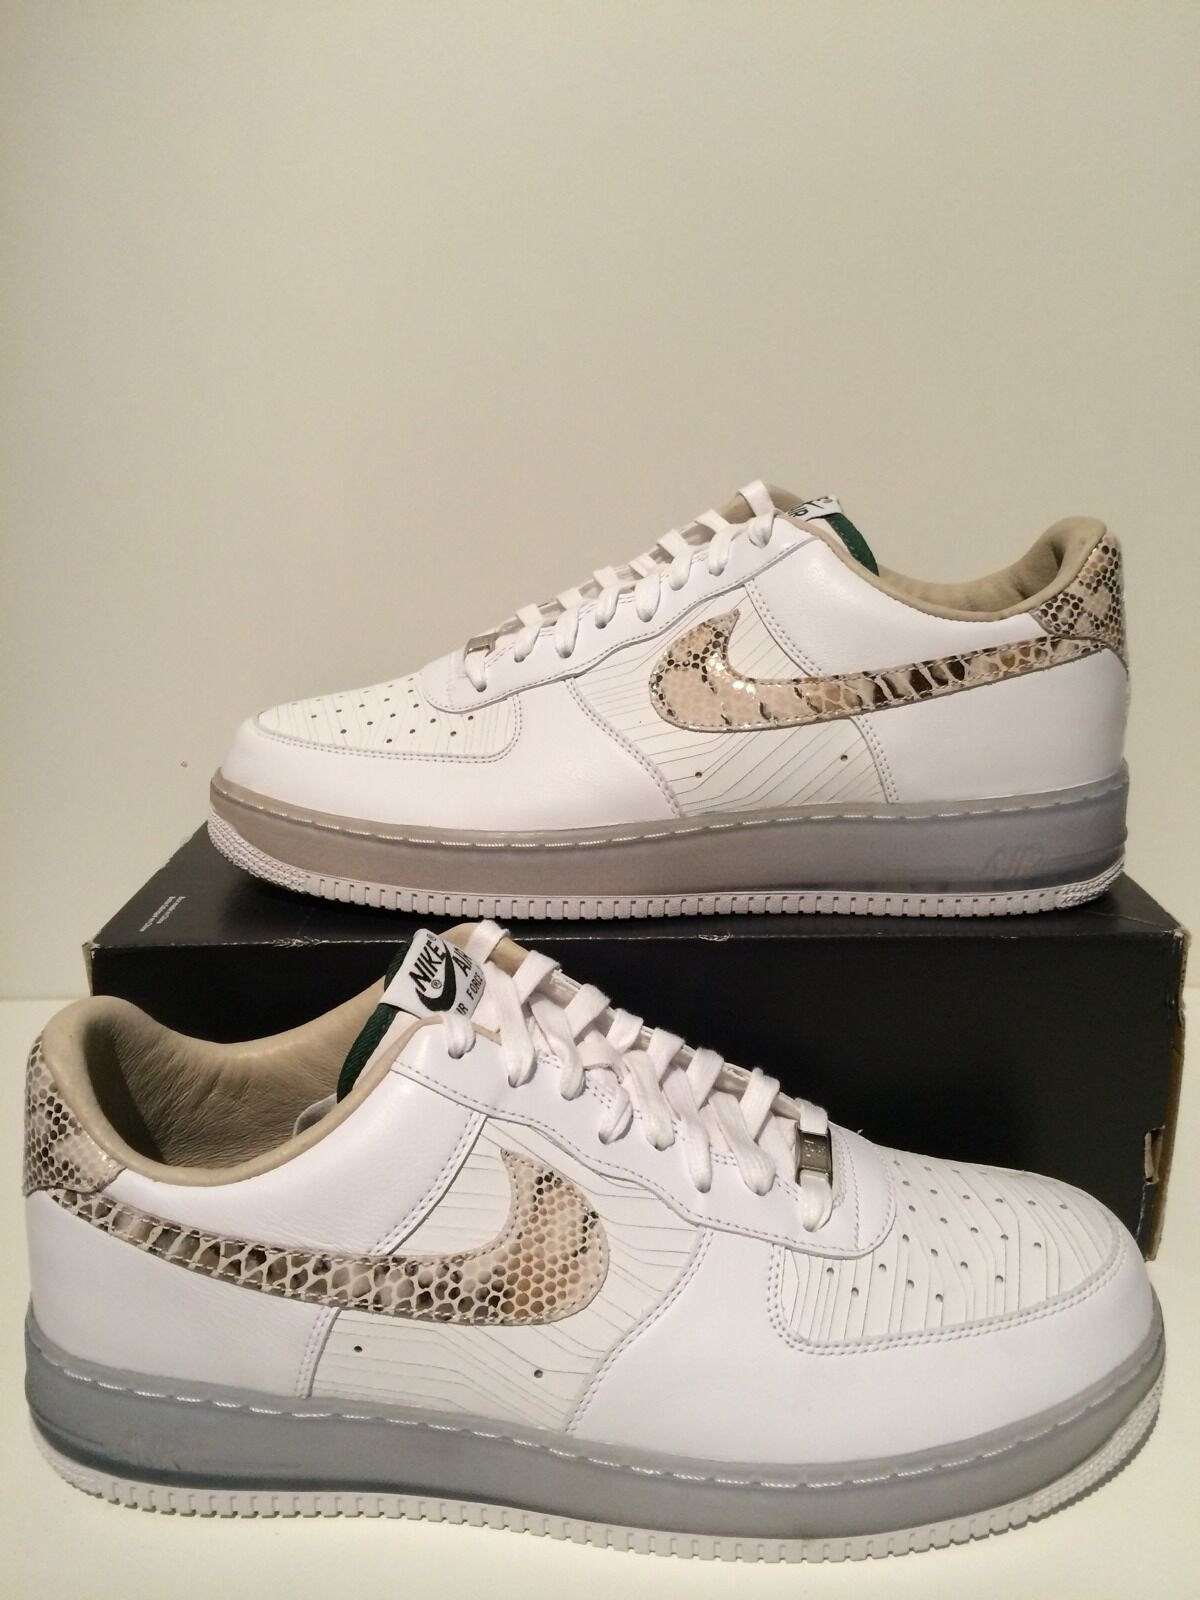 QS CMFT Low One 1 Force Air Nike AF1 PRM 14 Sz Skin Snake